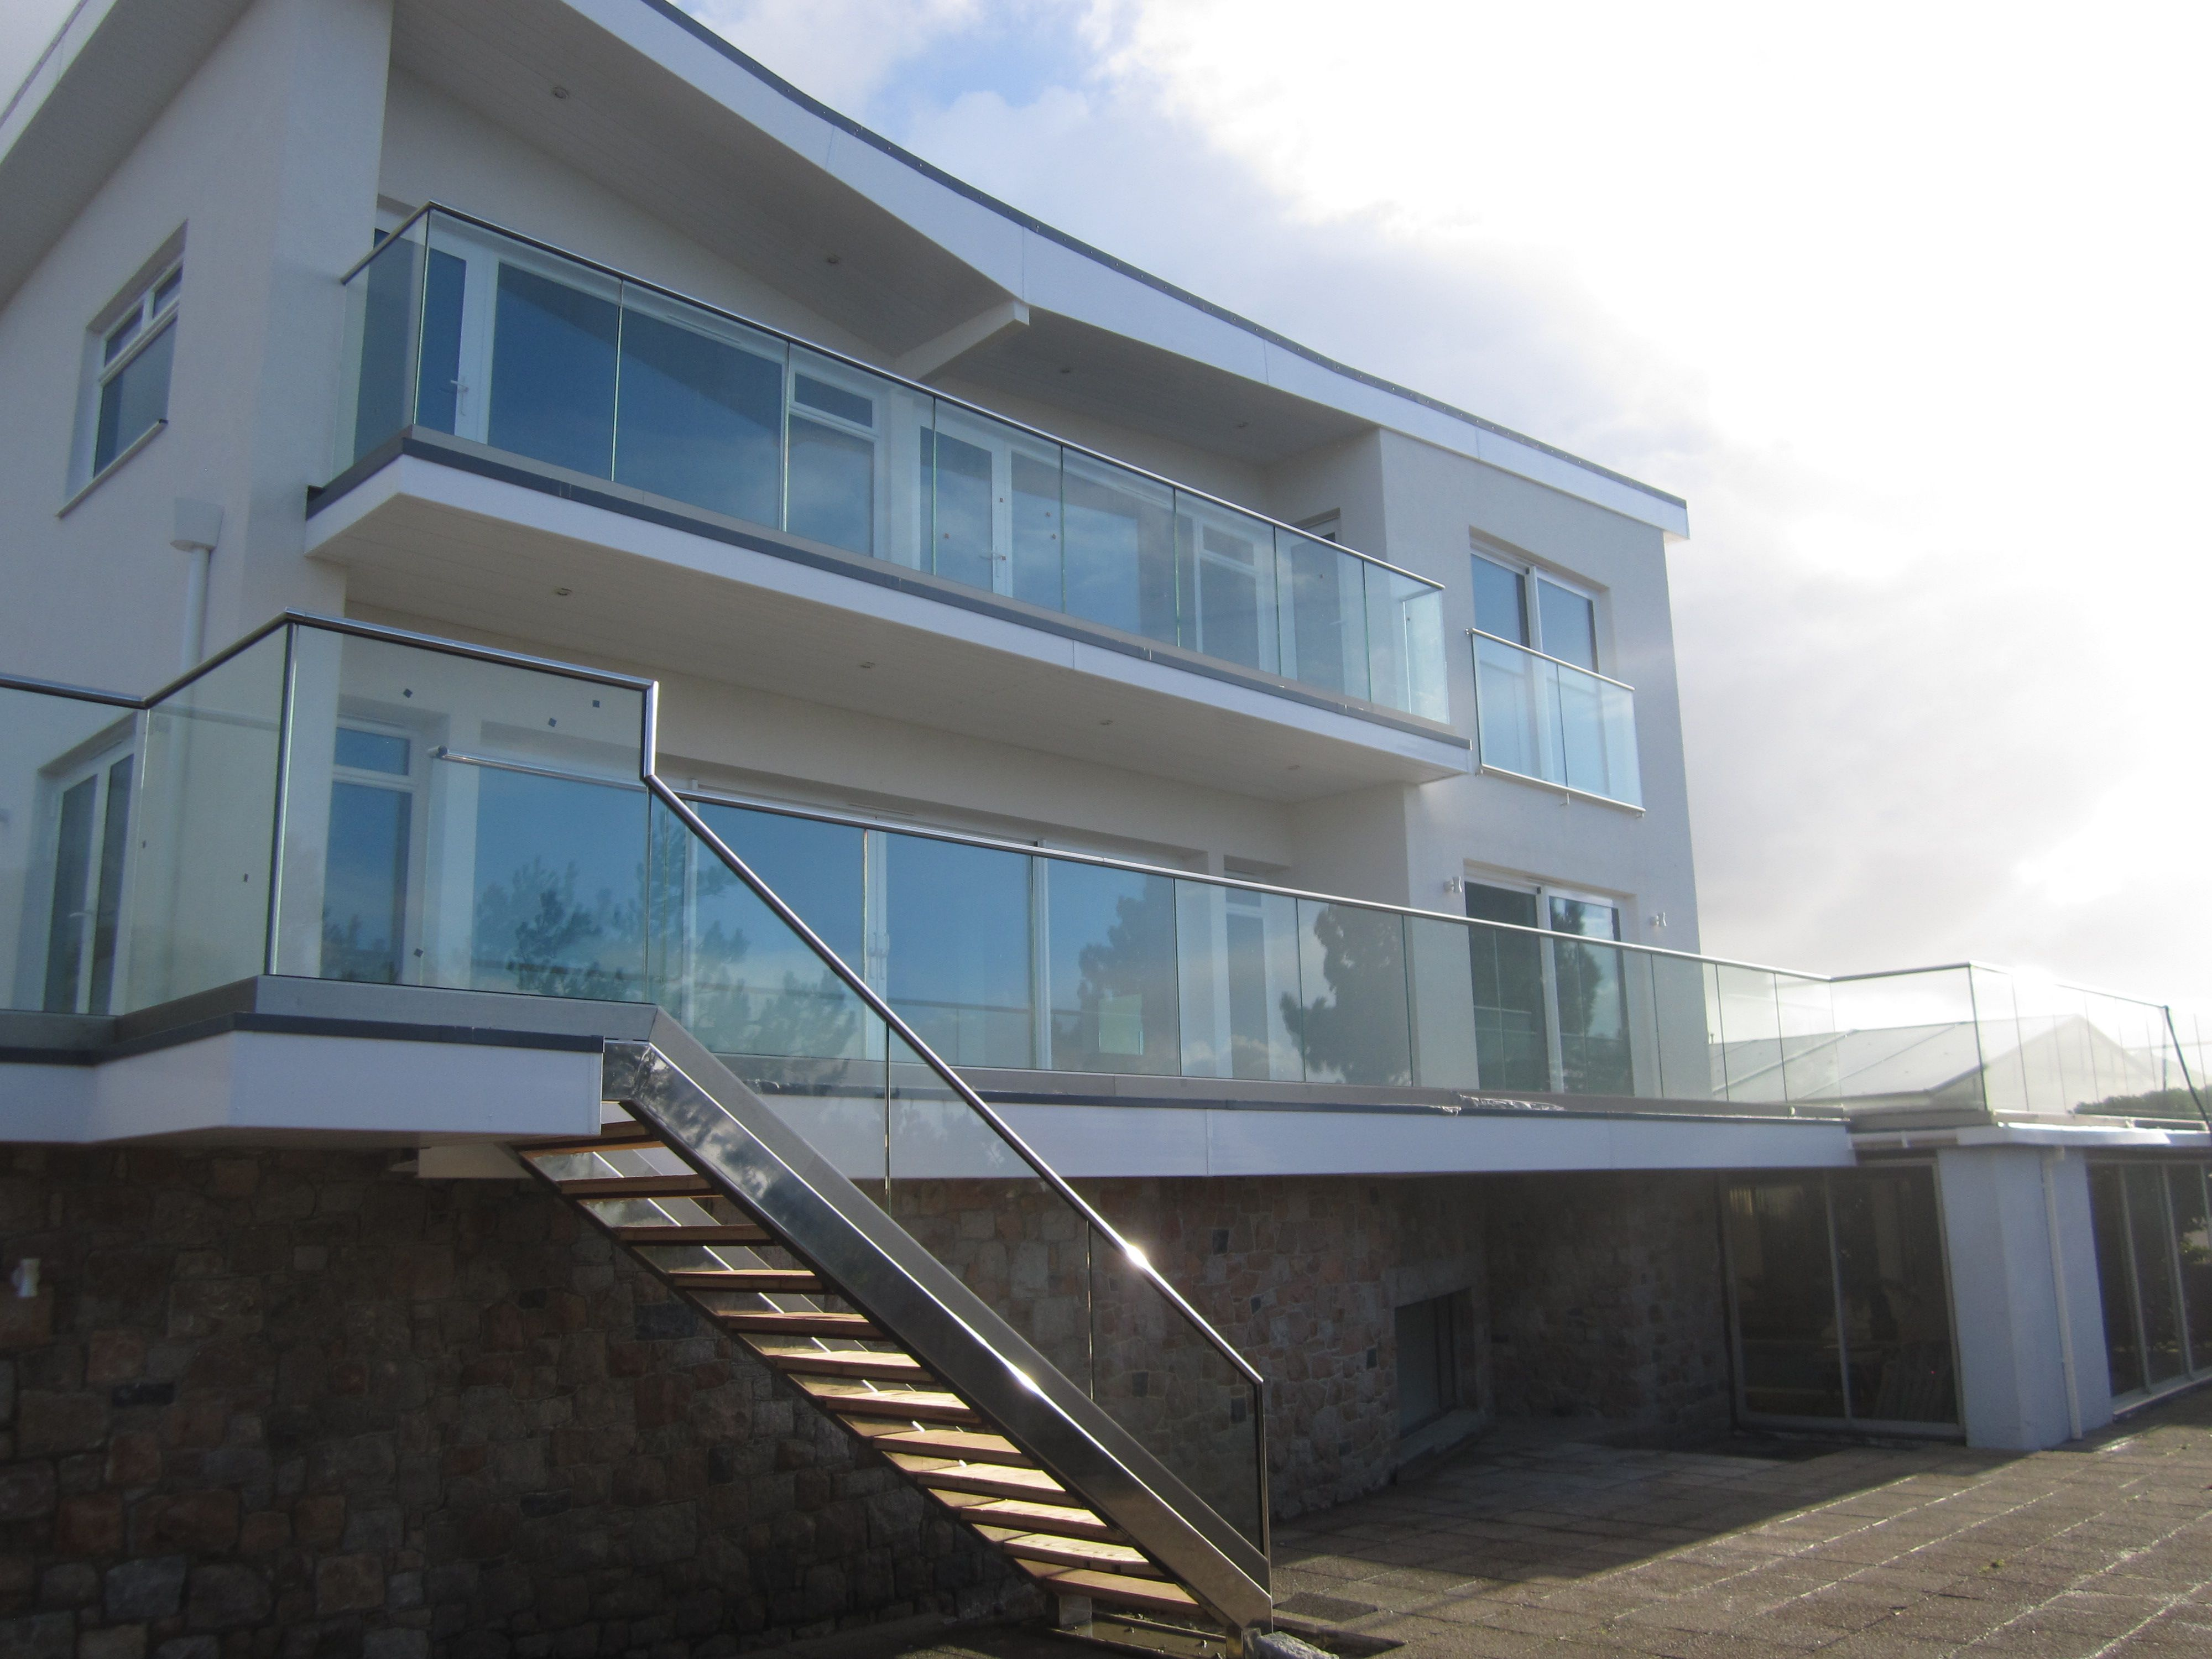 Stainless Steel, Glass Balcony and Stairs #StainlessSteel#metalwork ...